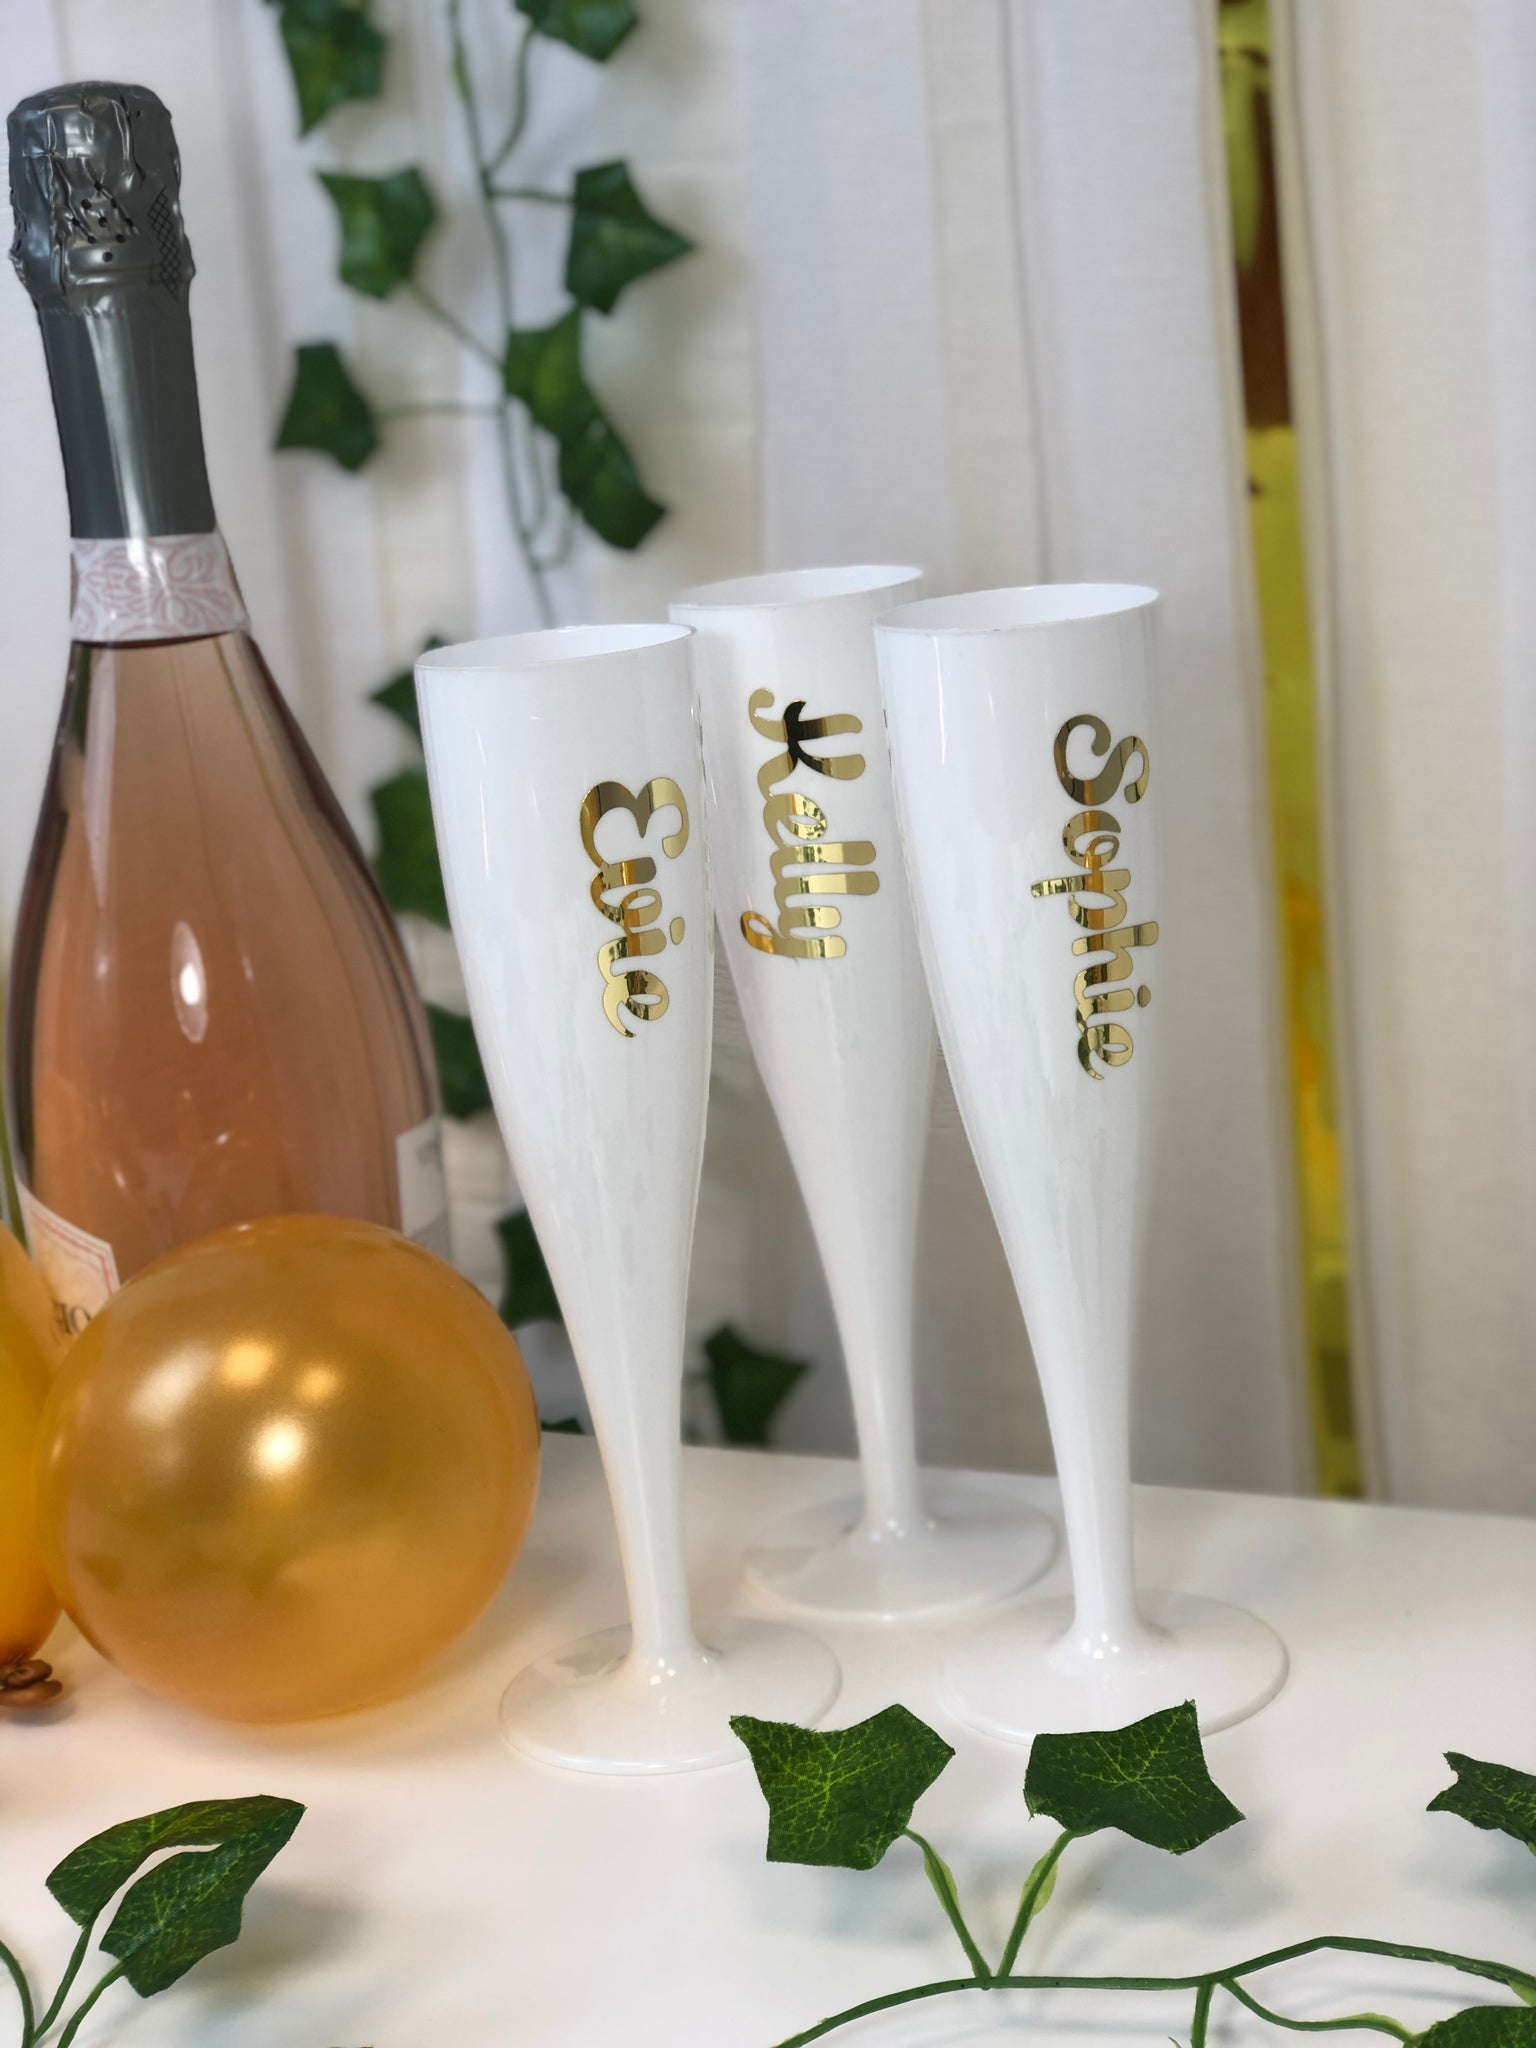 Gold Text Personalised Champagne & Prosecco Flute Glass White - 175ml - Each